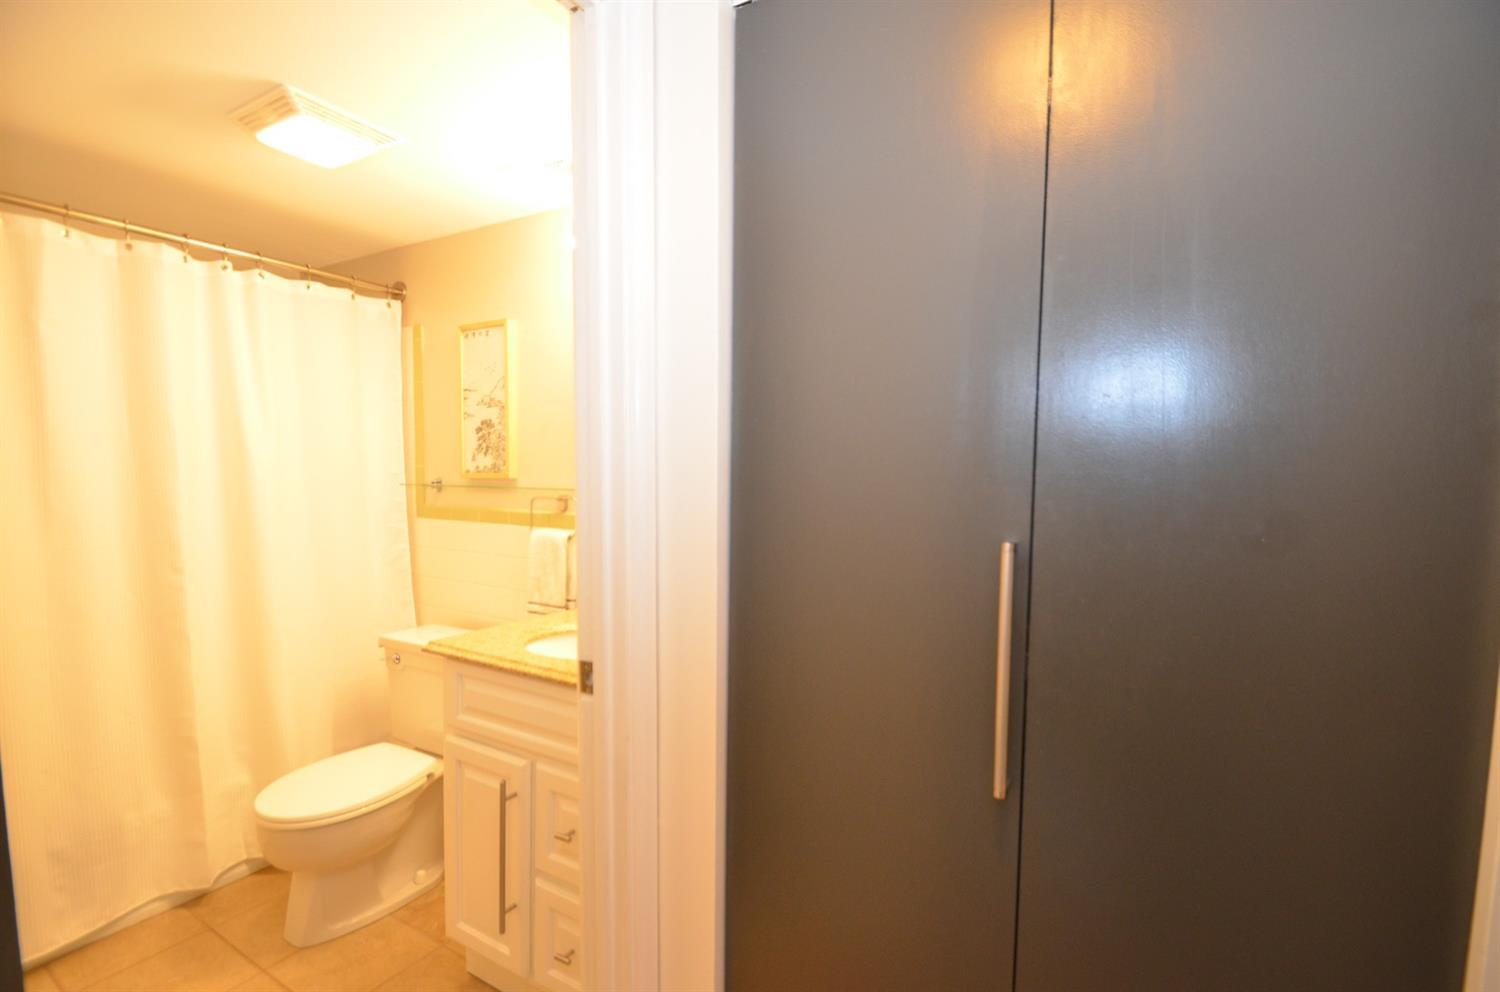 AND there is a linen closet just outside the bedroom and bathroom.